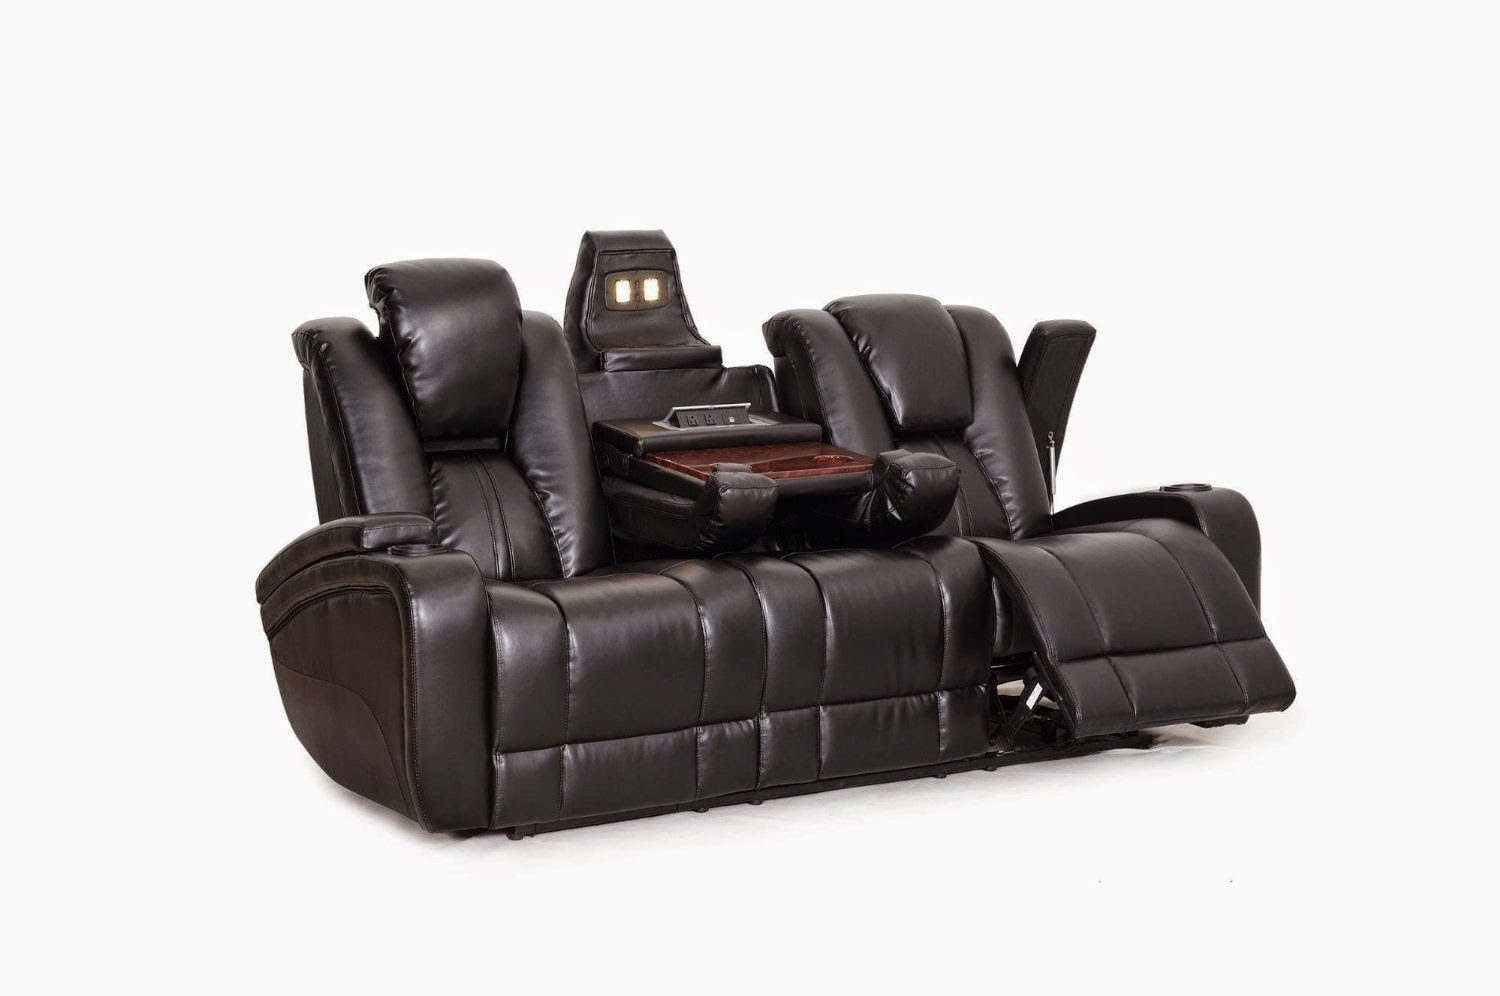 Hawkeye Double Reclining Sofa With Tray Table